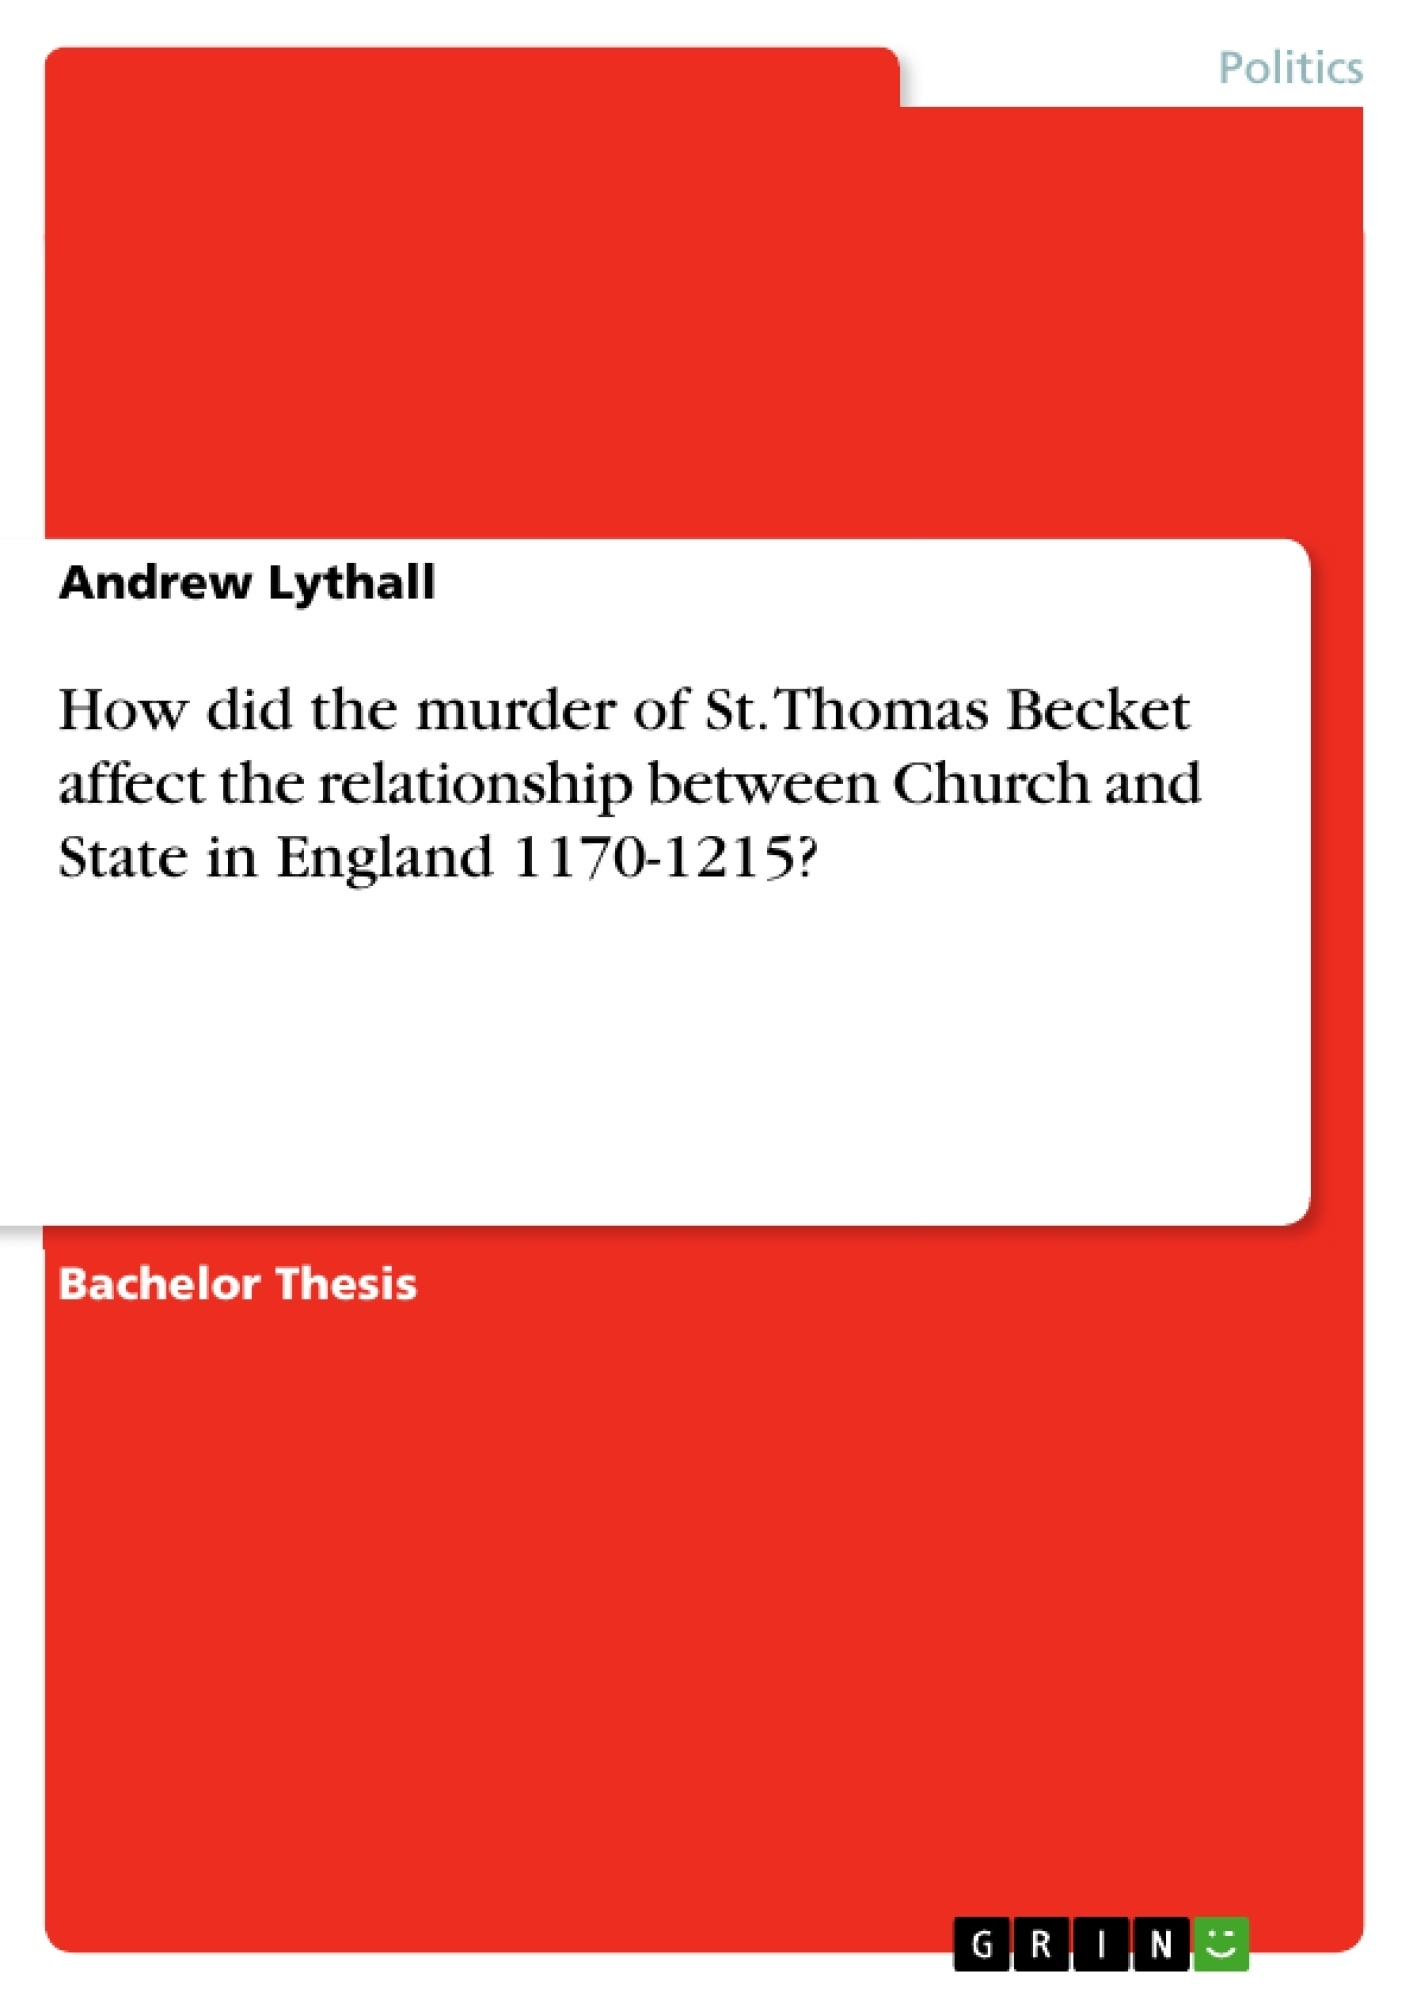 How did the murder of St. Thomas Becket affect the relationship ...